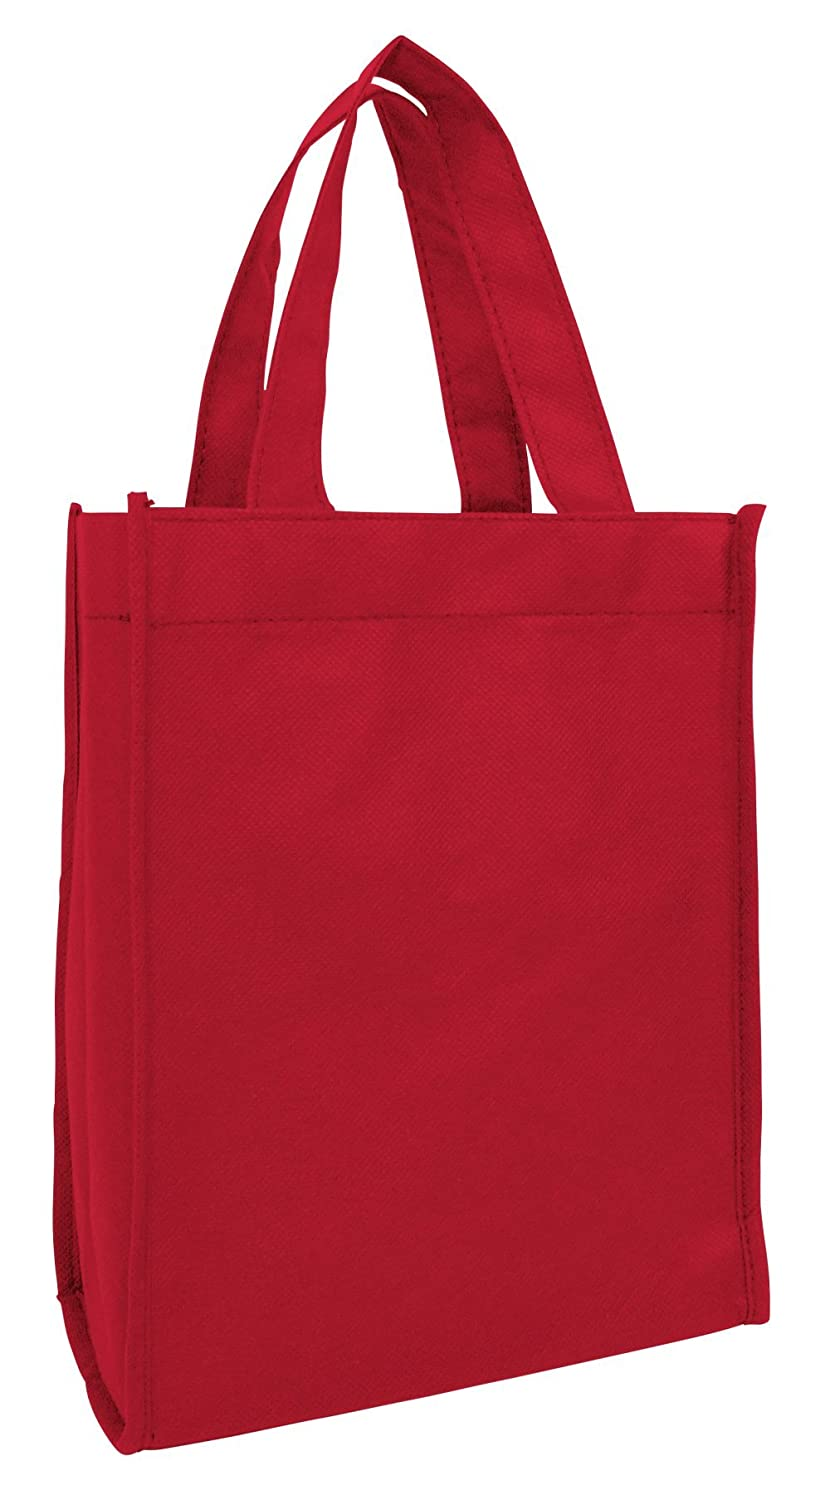 Set of 12- Small Gift Tote Bag Book Bag Bulk Non Woven Bag Multipurpose Art Craft Christmas, Valentine's day Gift Bags (Red) by ToteBagFactory B01I09DJEG レッド レッド